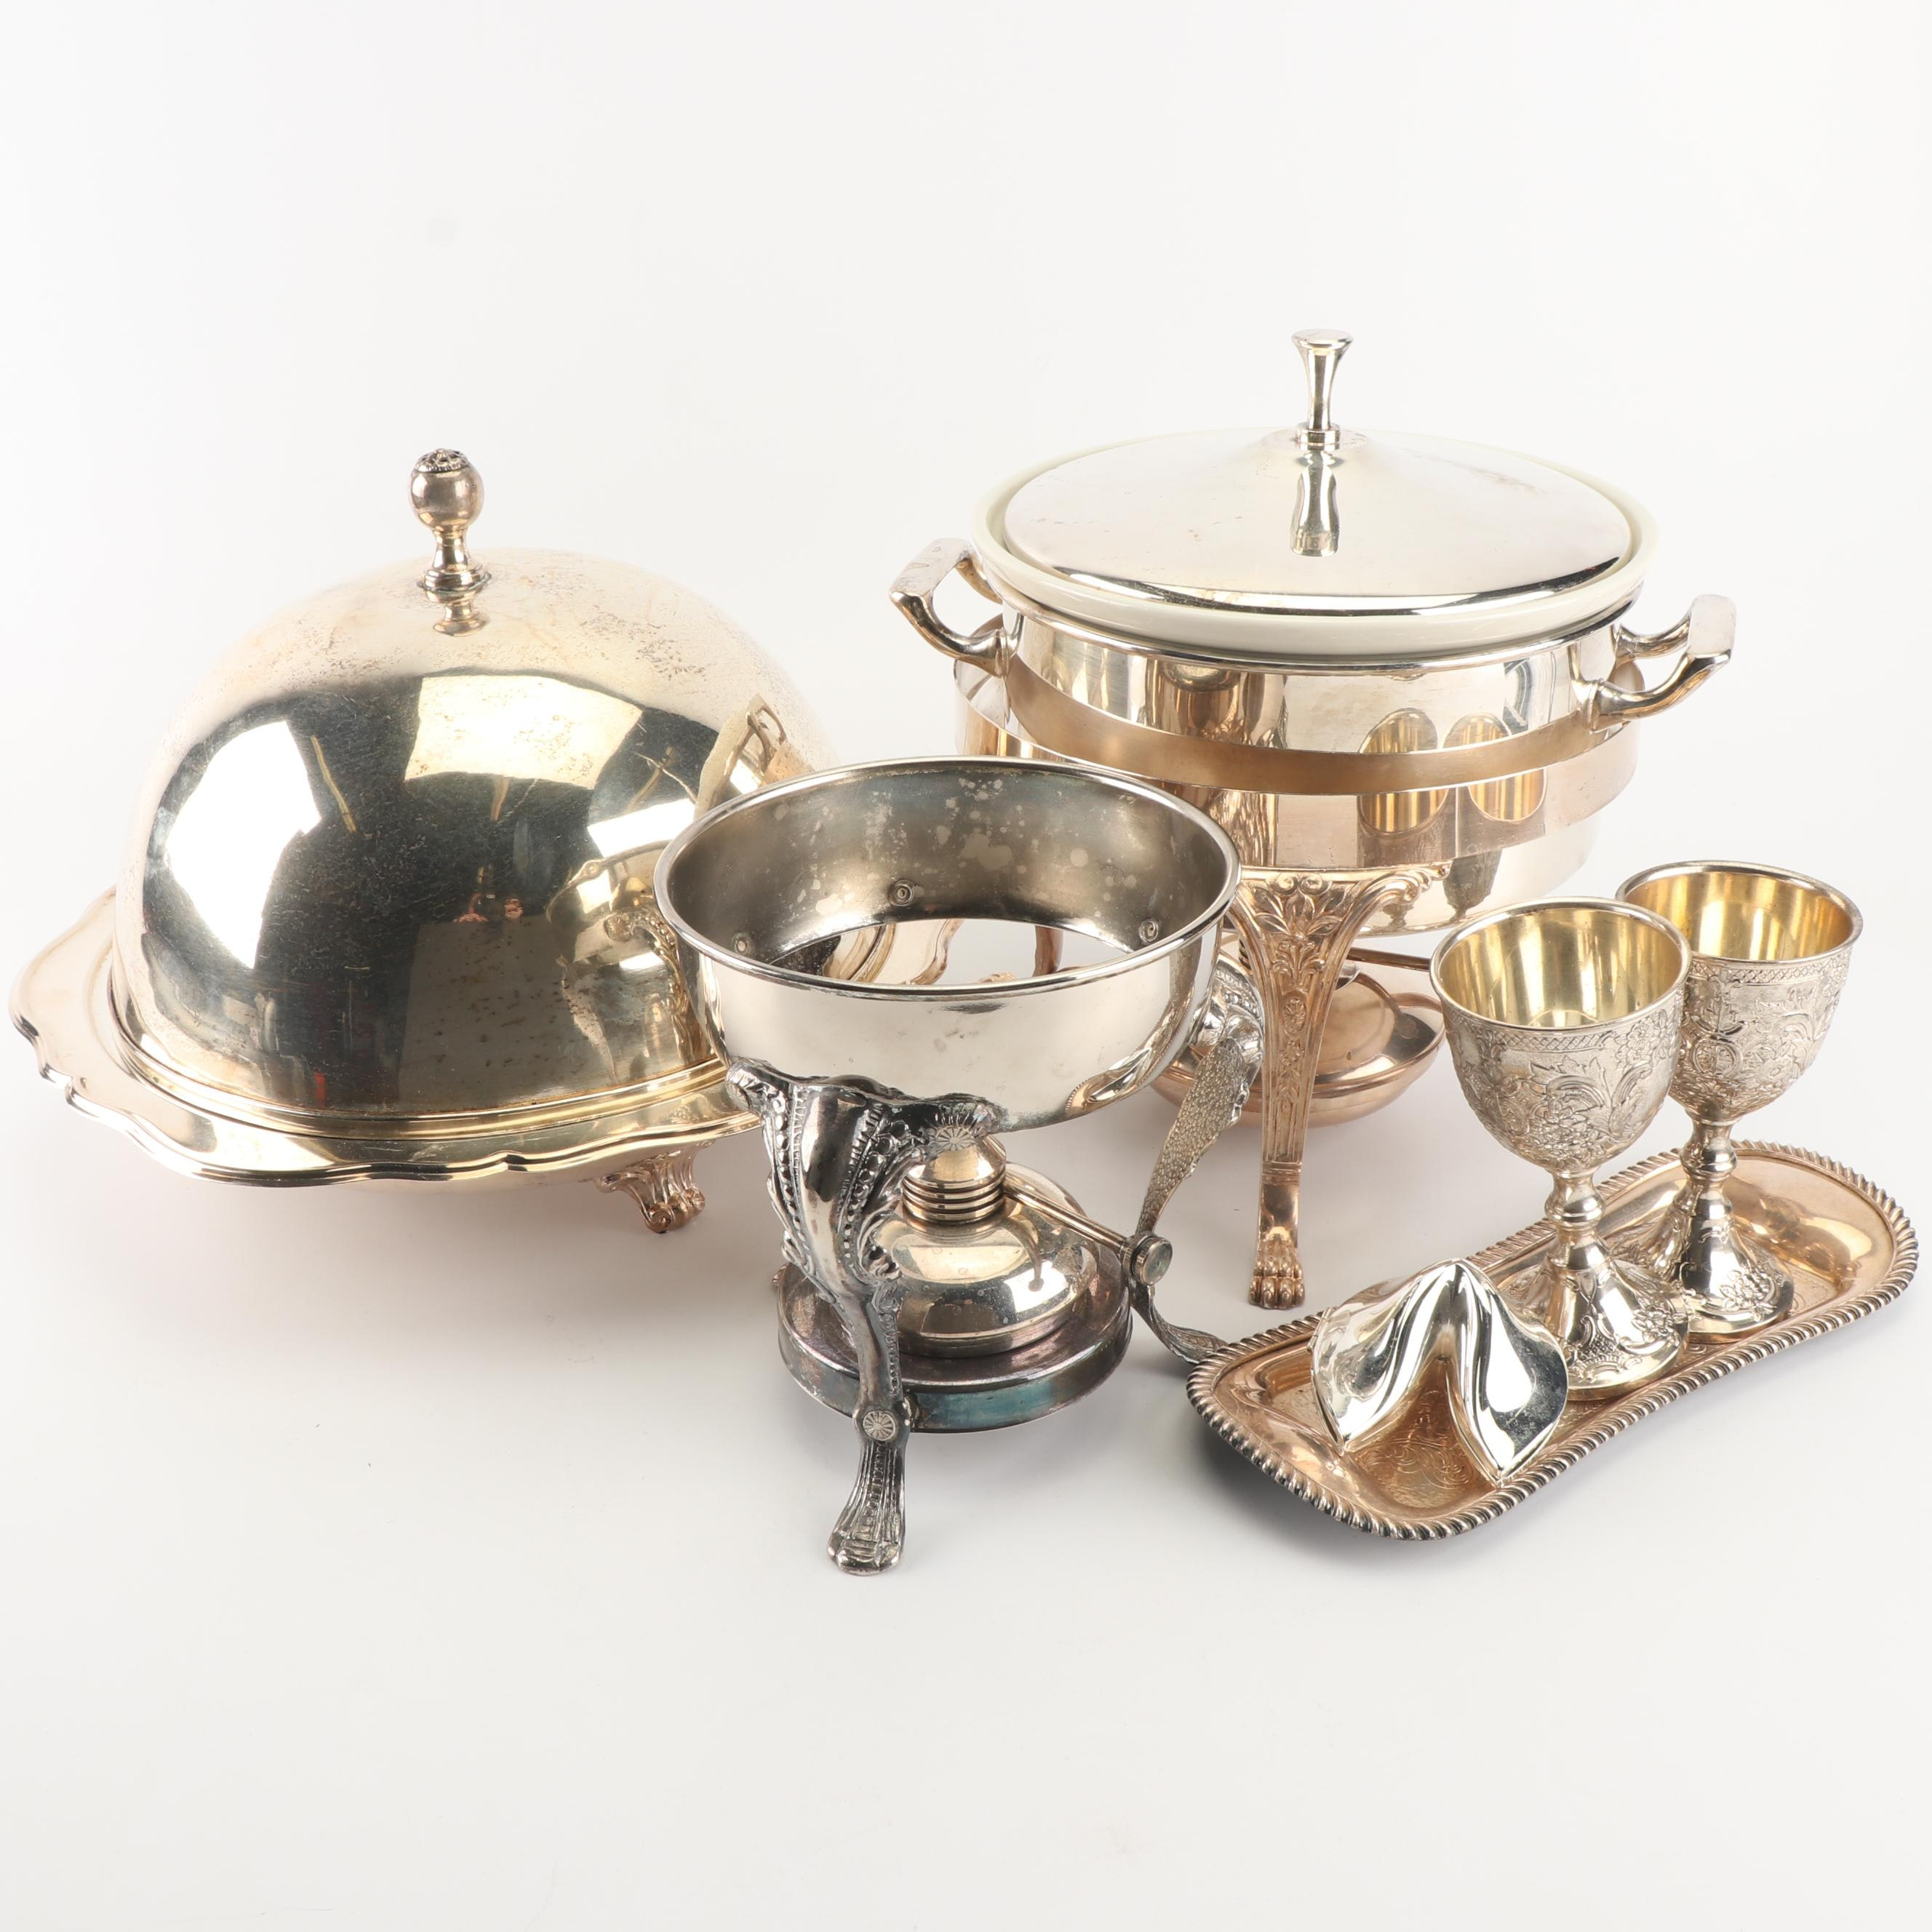 Leonard Silver Plate Chafing Dishes and Serveware with Butter Dish and More